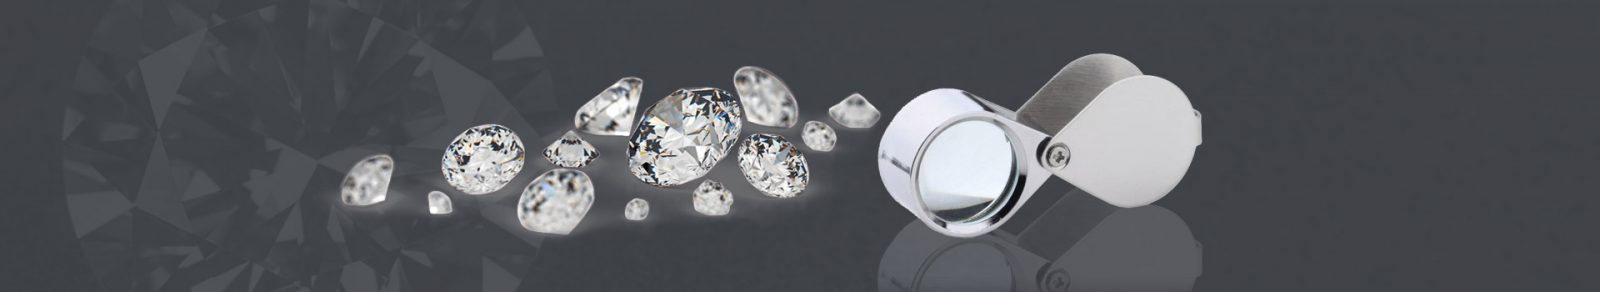 Kensington Jewelers Diamonds